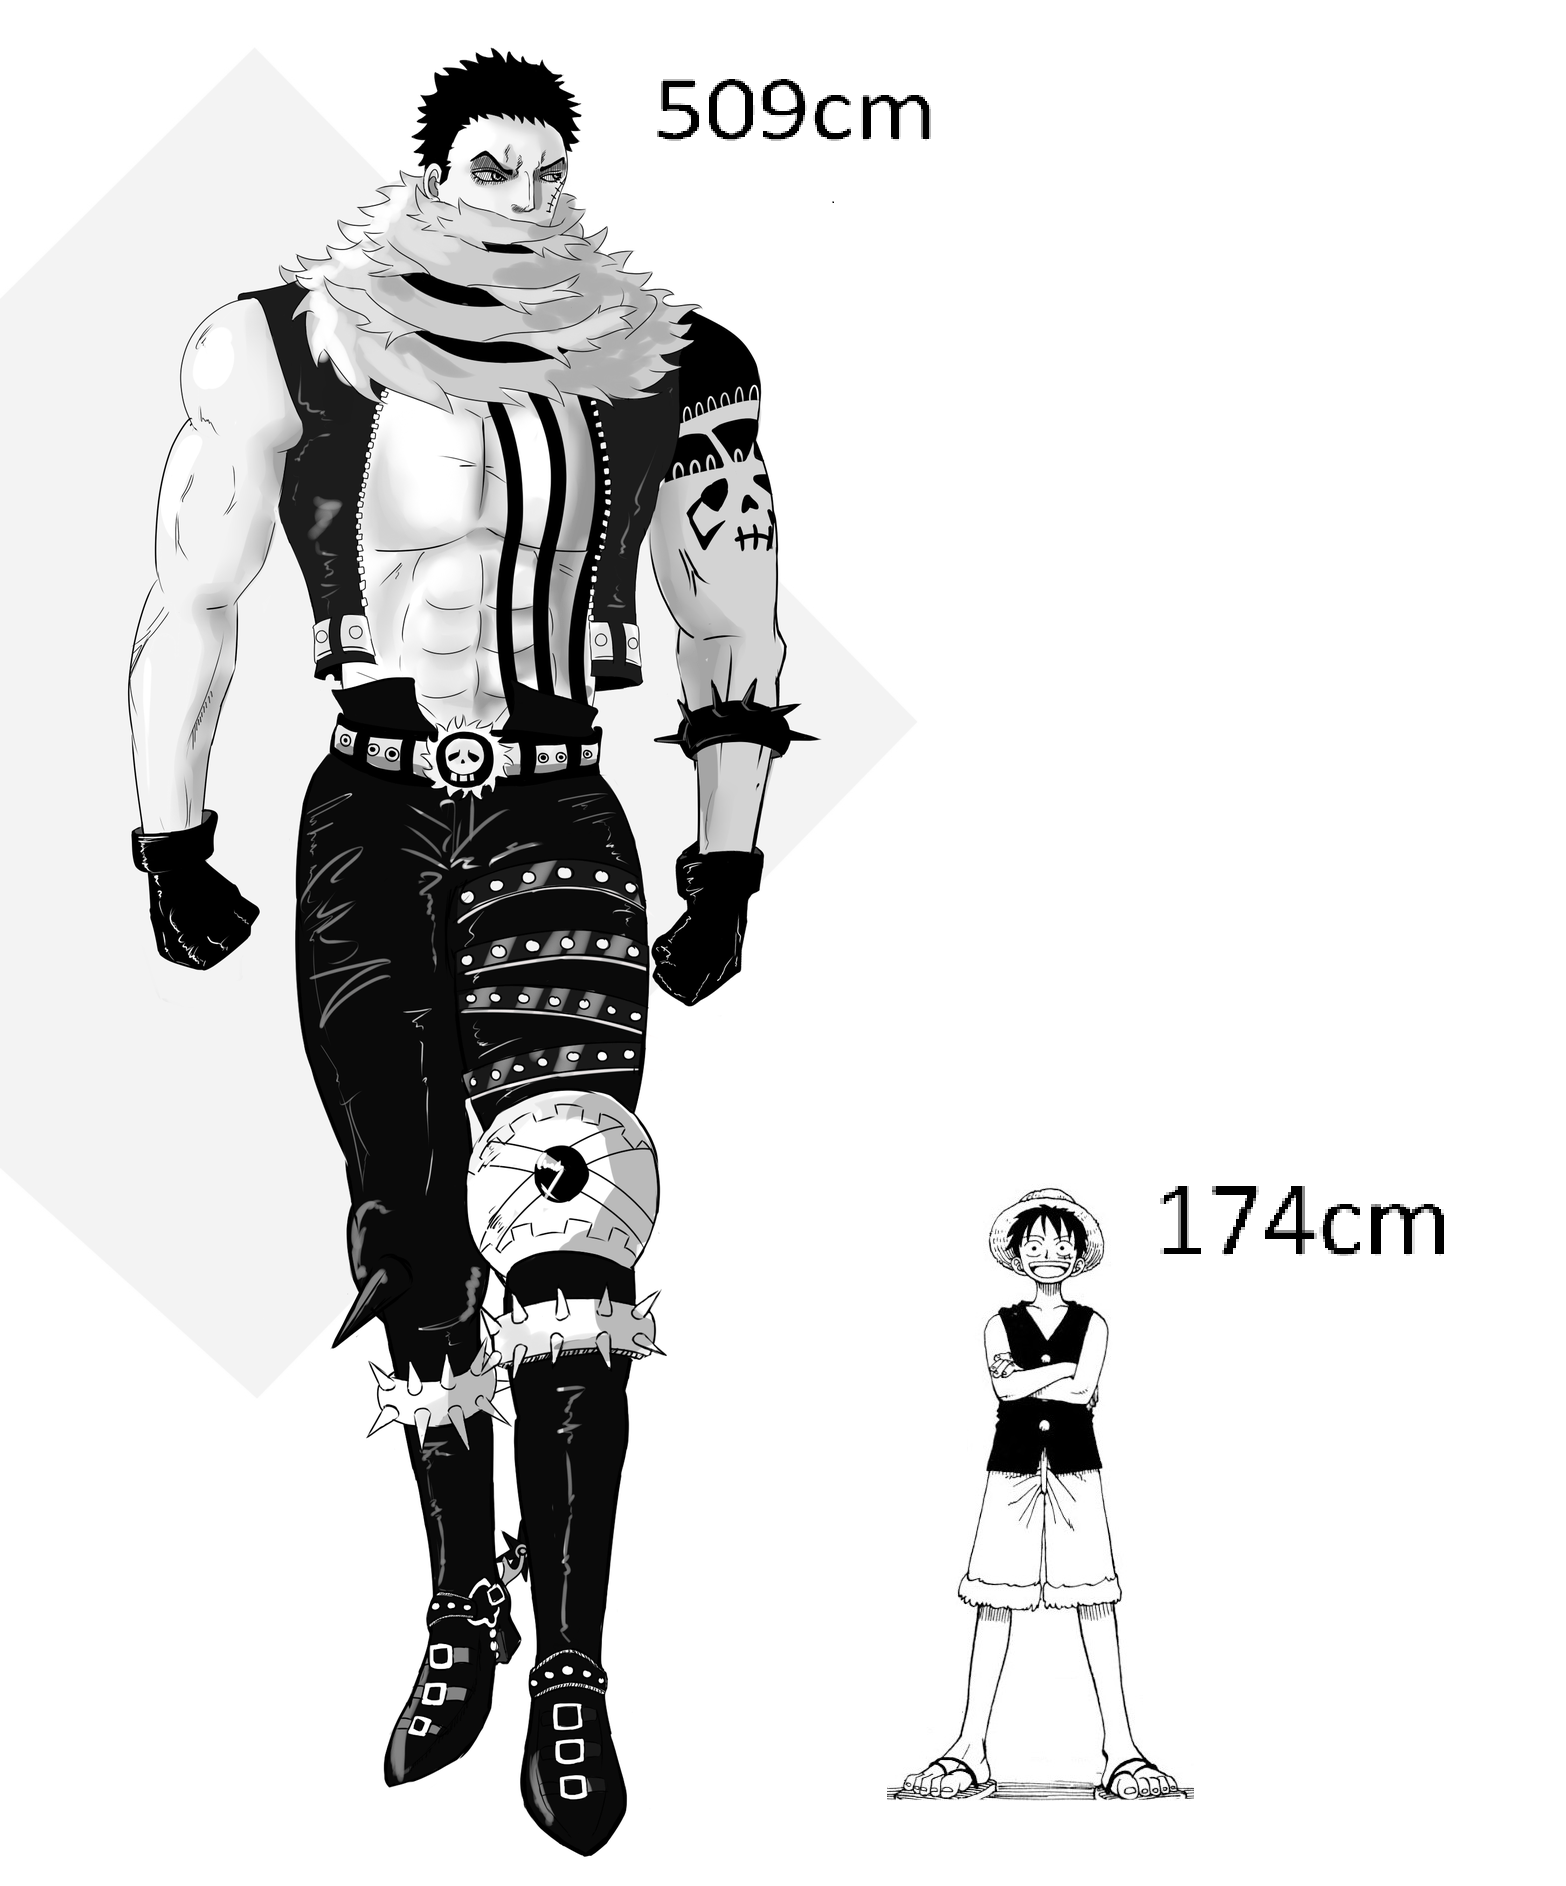 height difference between luffy and his current opponent